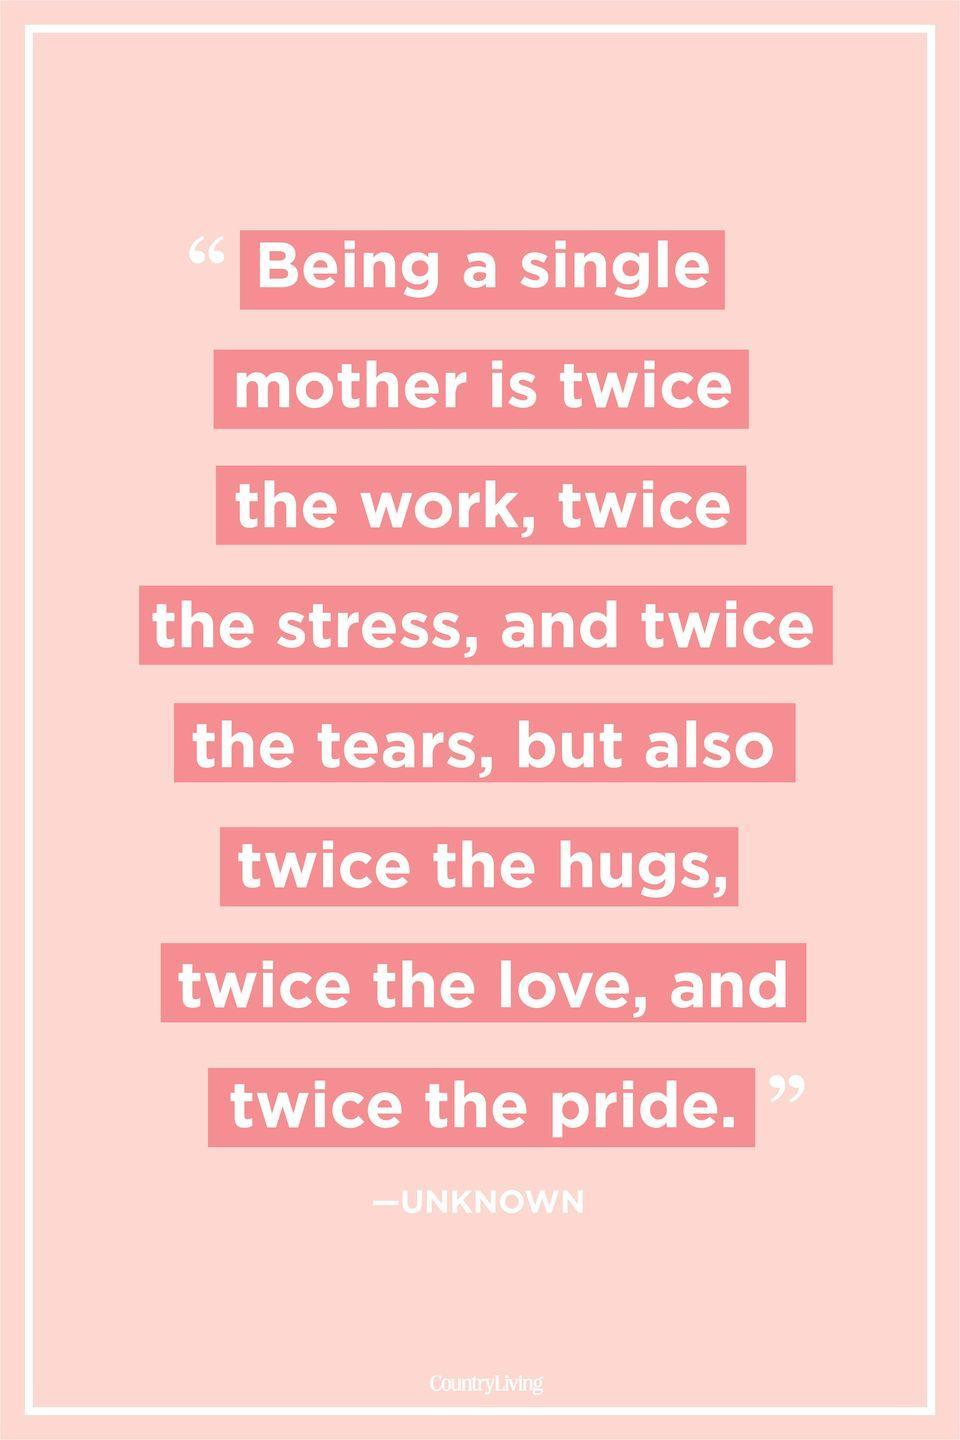 "<p>""Being a single mother is twice the work, twice the stress, and twice the tears, but also twice the hugs, twice the love, and twice the pride.""</p><p><strong>RELATED: <a href=""https://www.countryliving.com/life/g1724/mothers-day-poems-quotes/"" rel=""nofollow noopener"" target=""_blank"" data-ylk=""slk:Mother's Day Quotes Every Mom Should Read"" class=""link rapid-noclick-resp"">Mother's Day Quotes Every Mom Should Read</a></strong><br></p>"